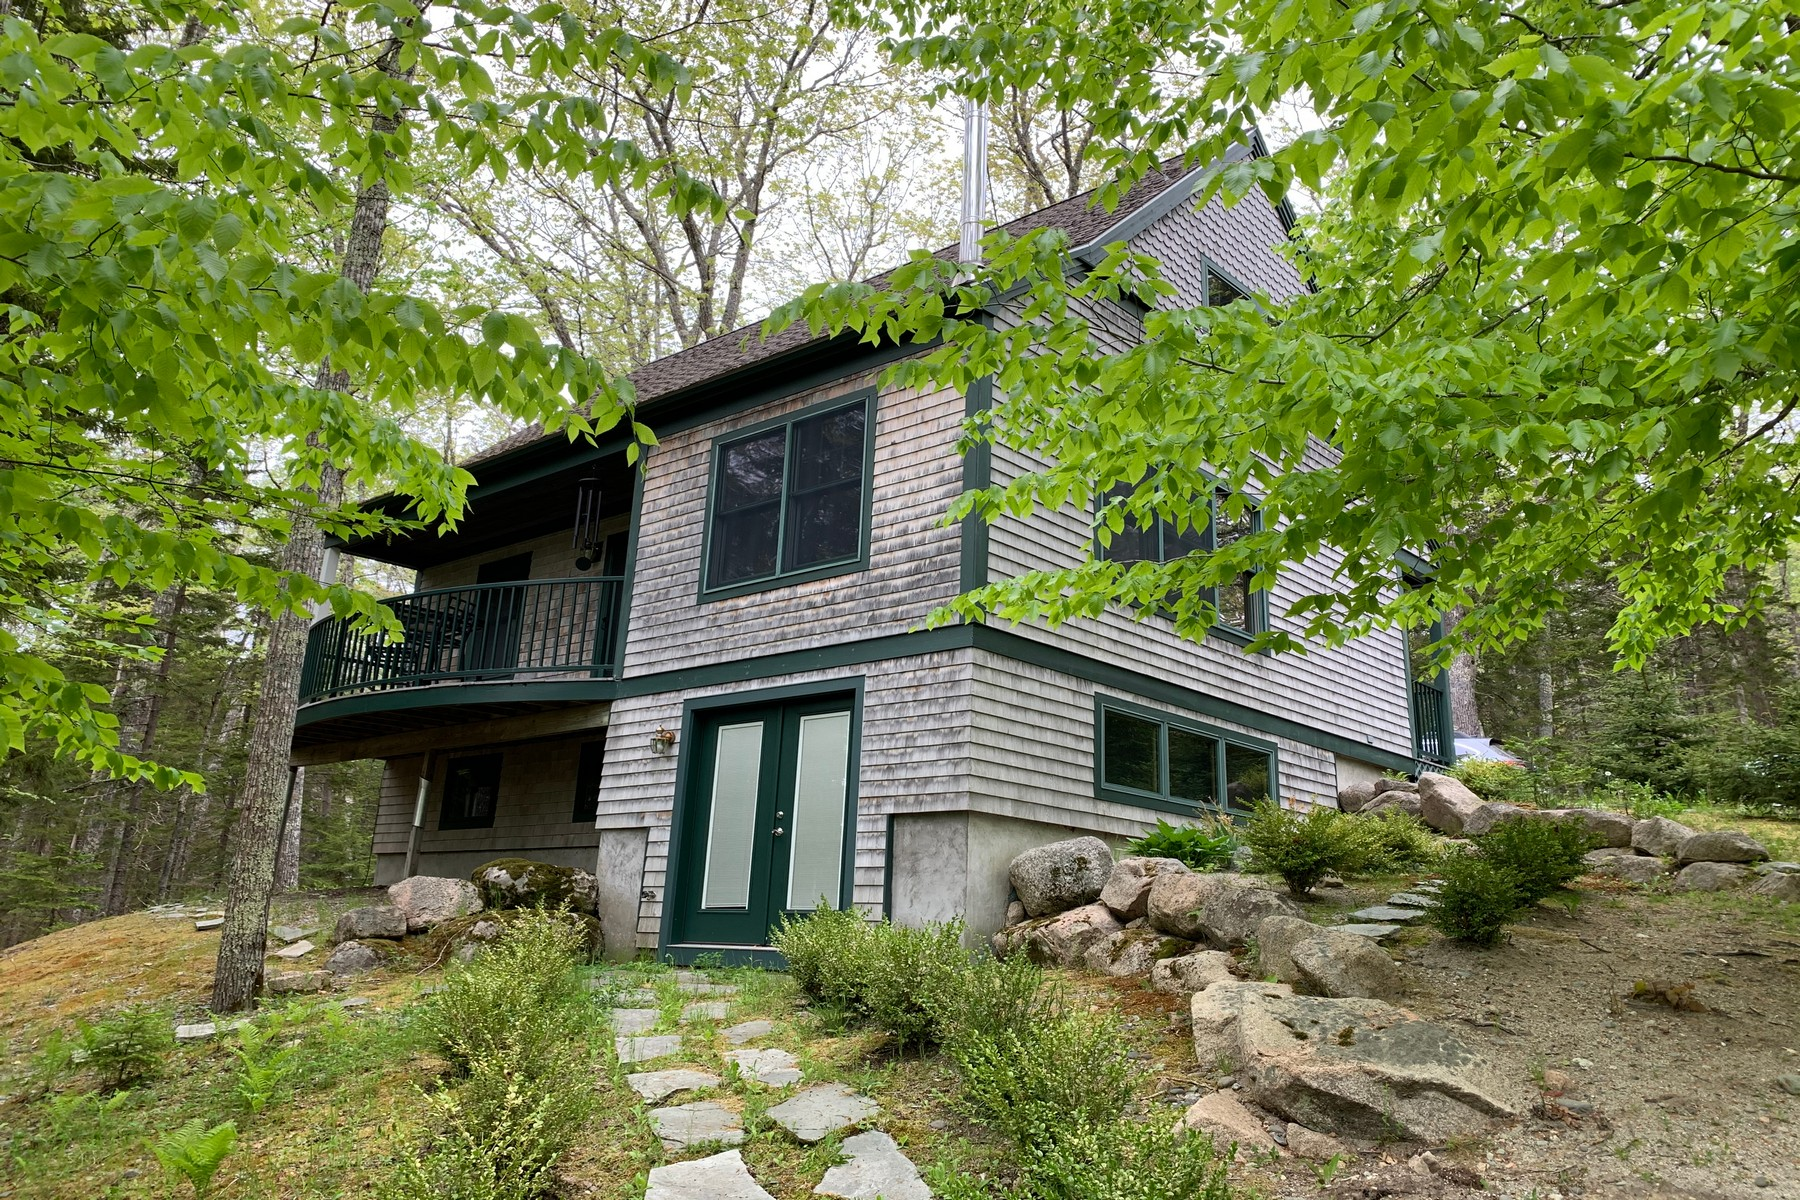 Single Family Homes for Sale at The Trail House 343 Sound Drive Mount Desert, Maine 04660 United States